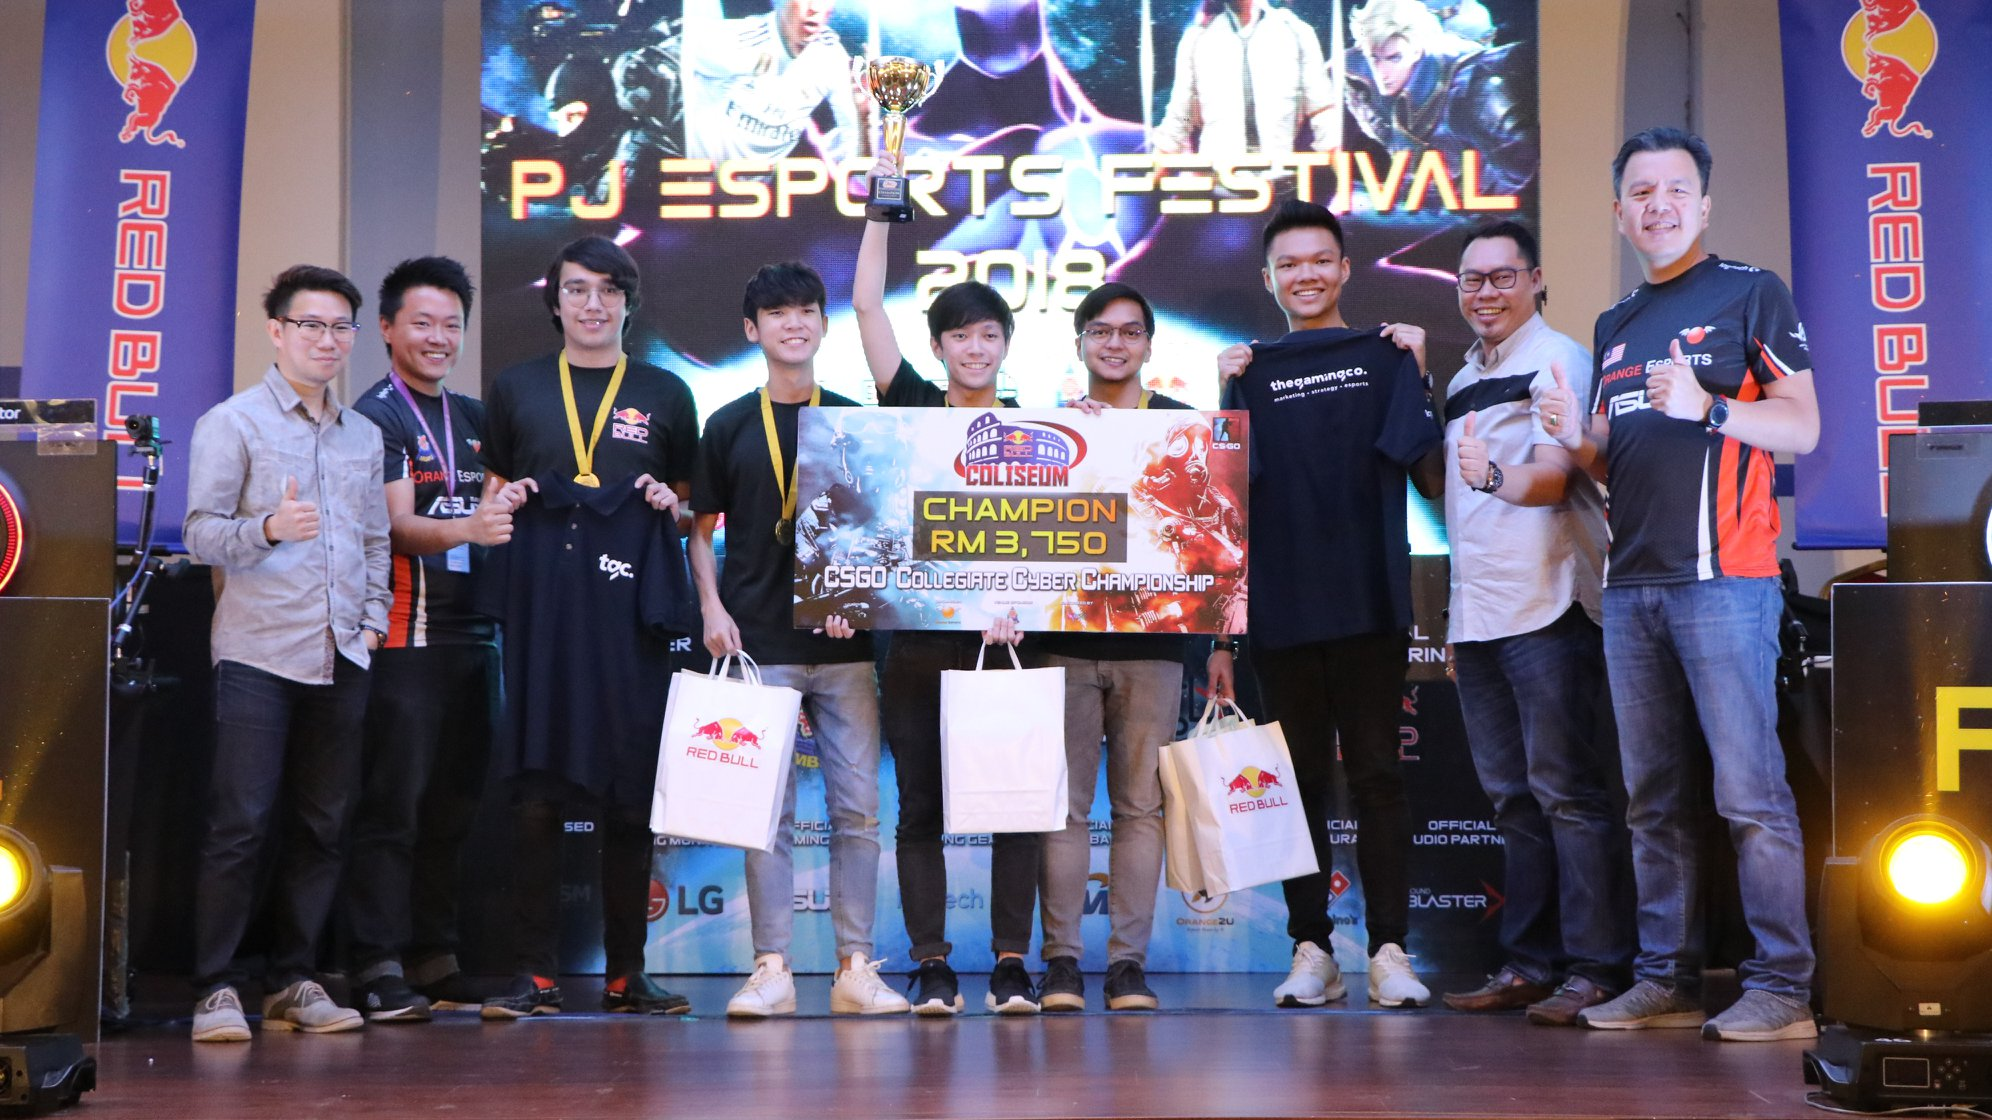 MyGameOn | Weekly Esports Recap: Here's What Went Down At MPL, PJ